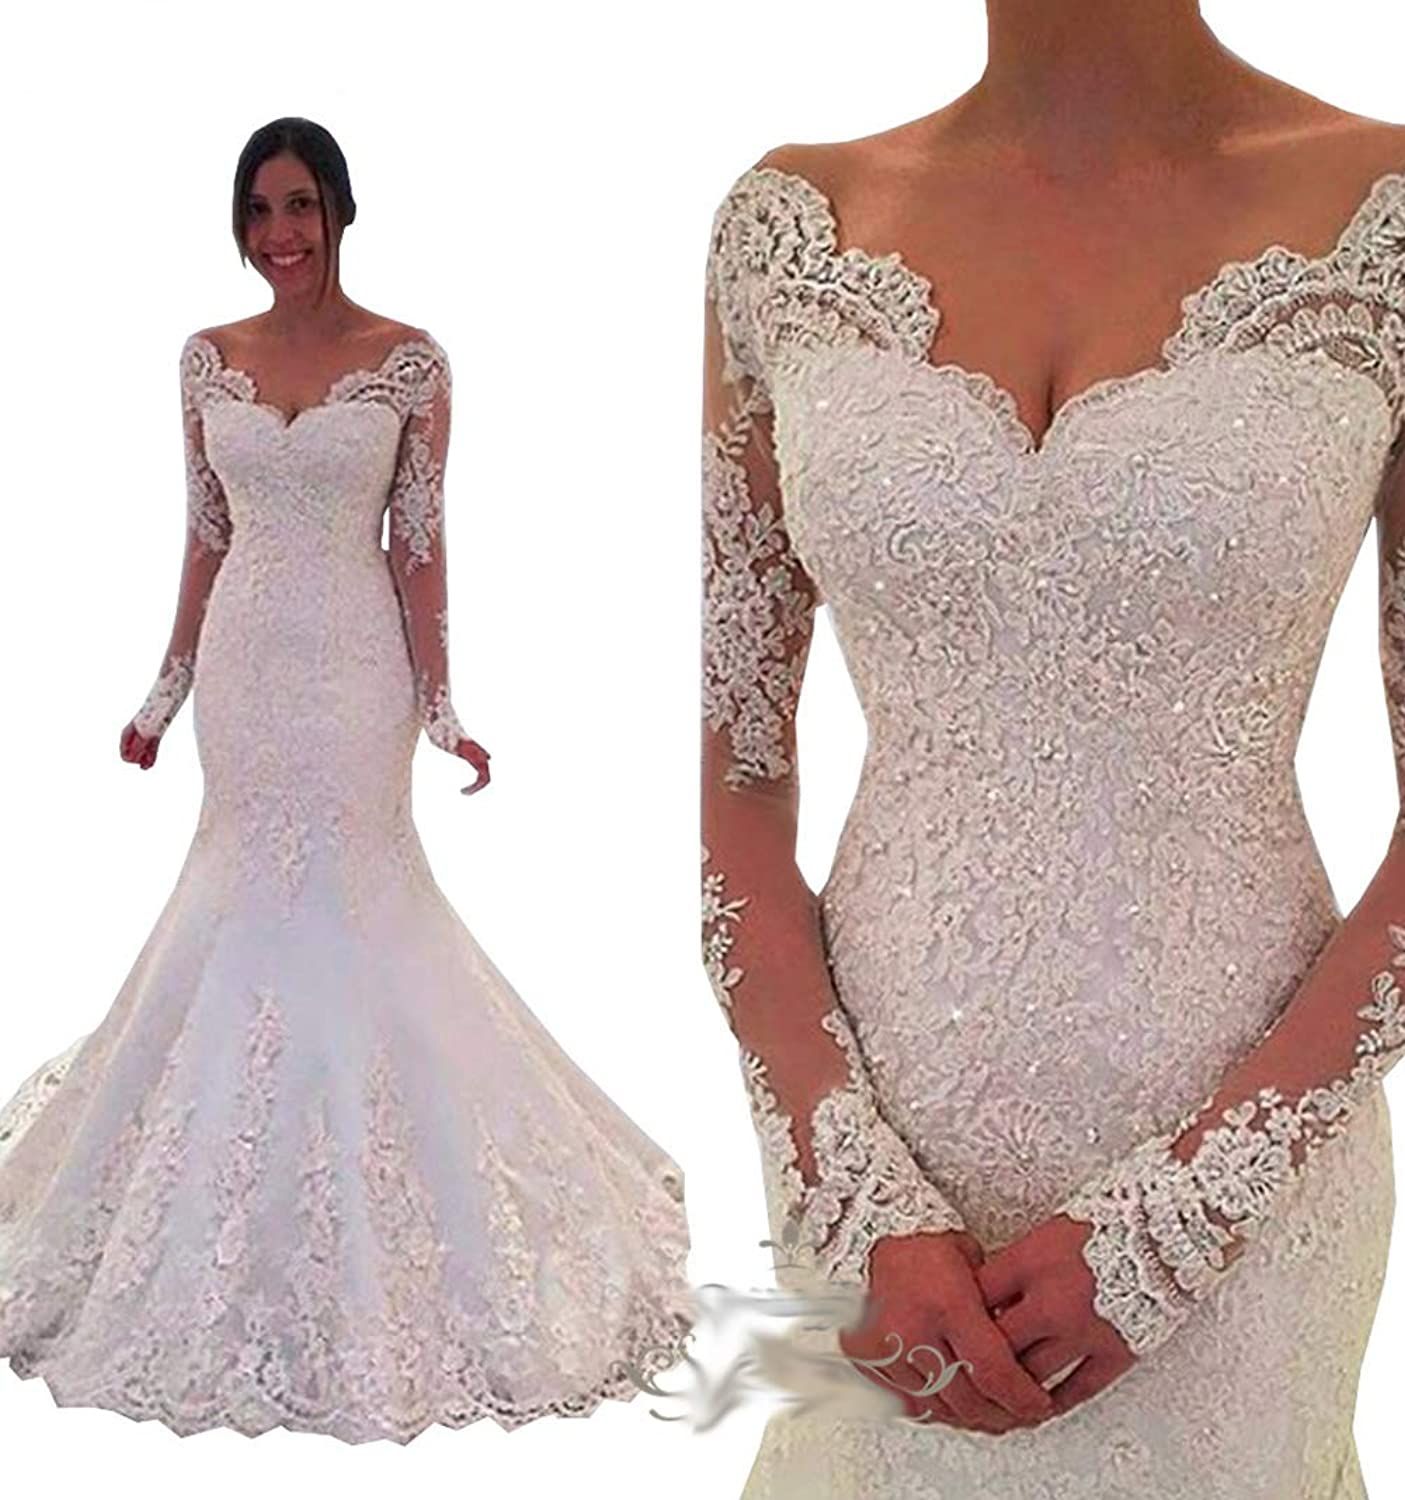 Ryanth Long Sleeve Women's Mermaid Wedding Dresses Luxury Lace Beading Laceup Back Bridal Gowns